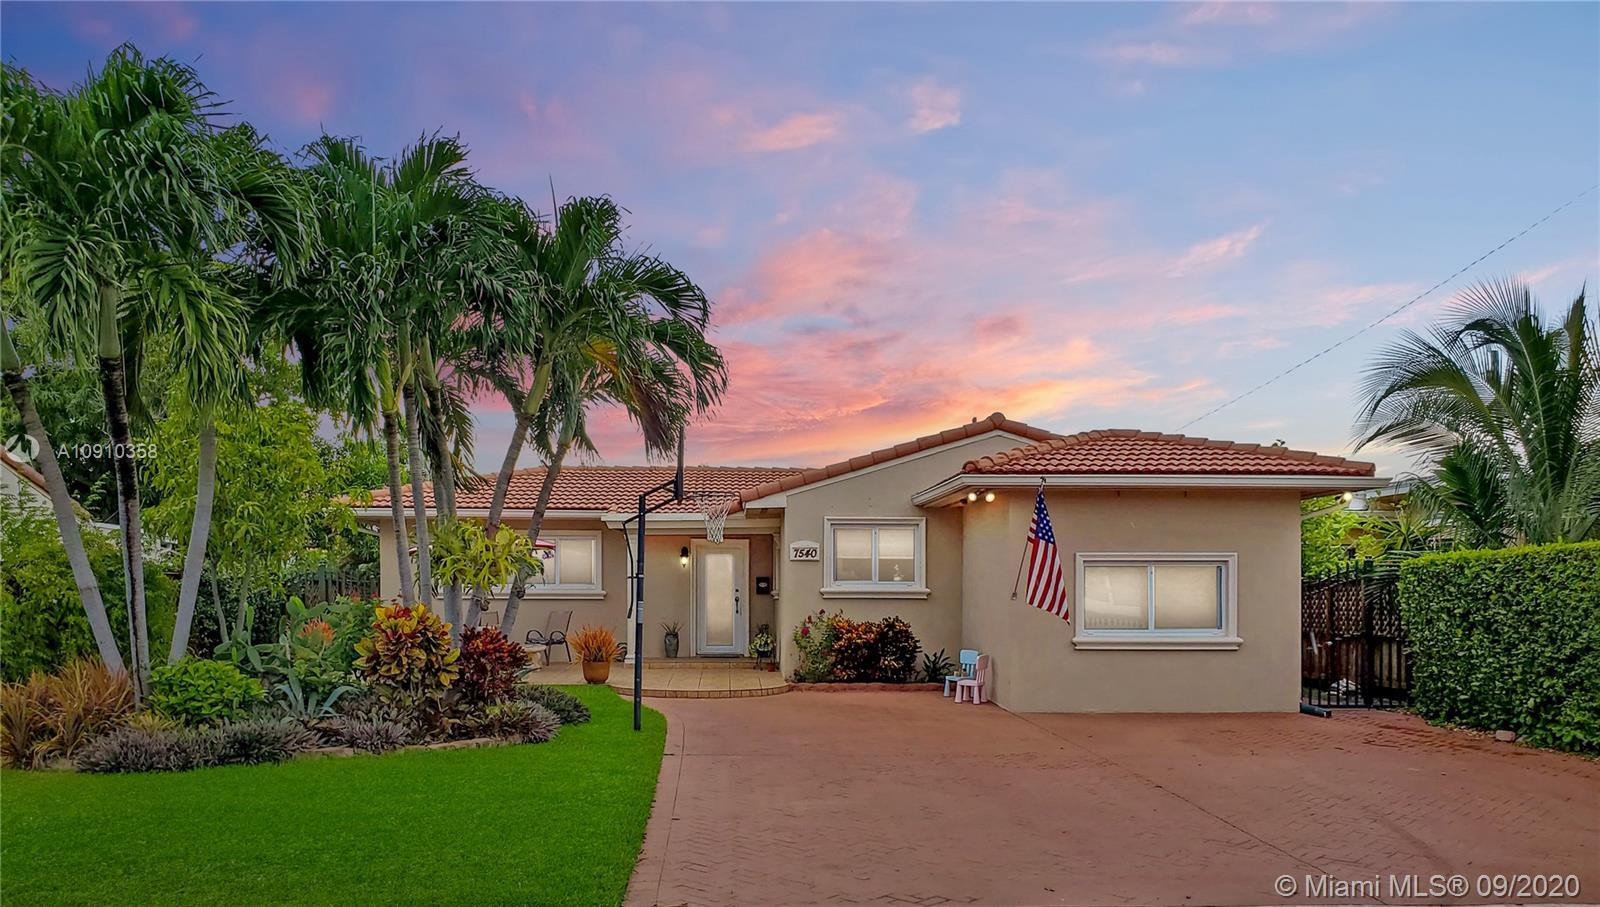 Beautifully updated home in North Bay Village in the Treasure Island section. Features, 3bd/2ba, tru